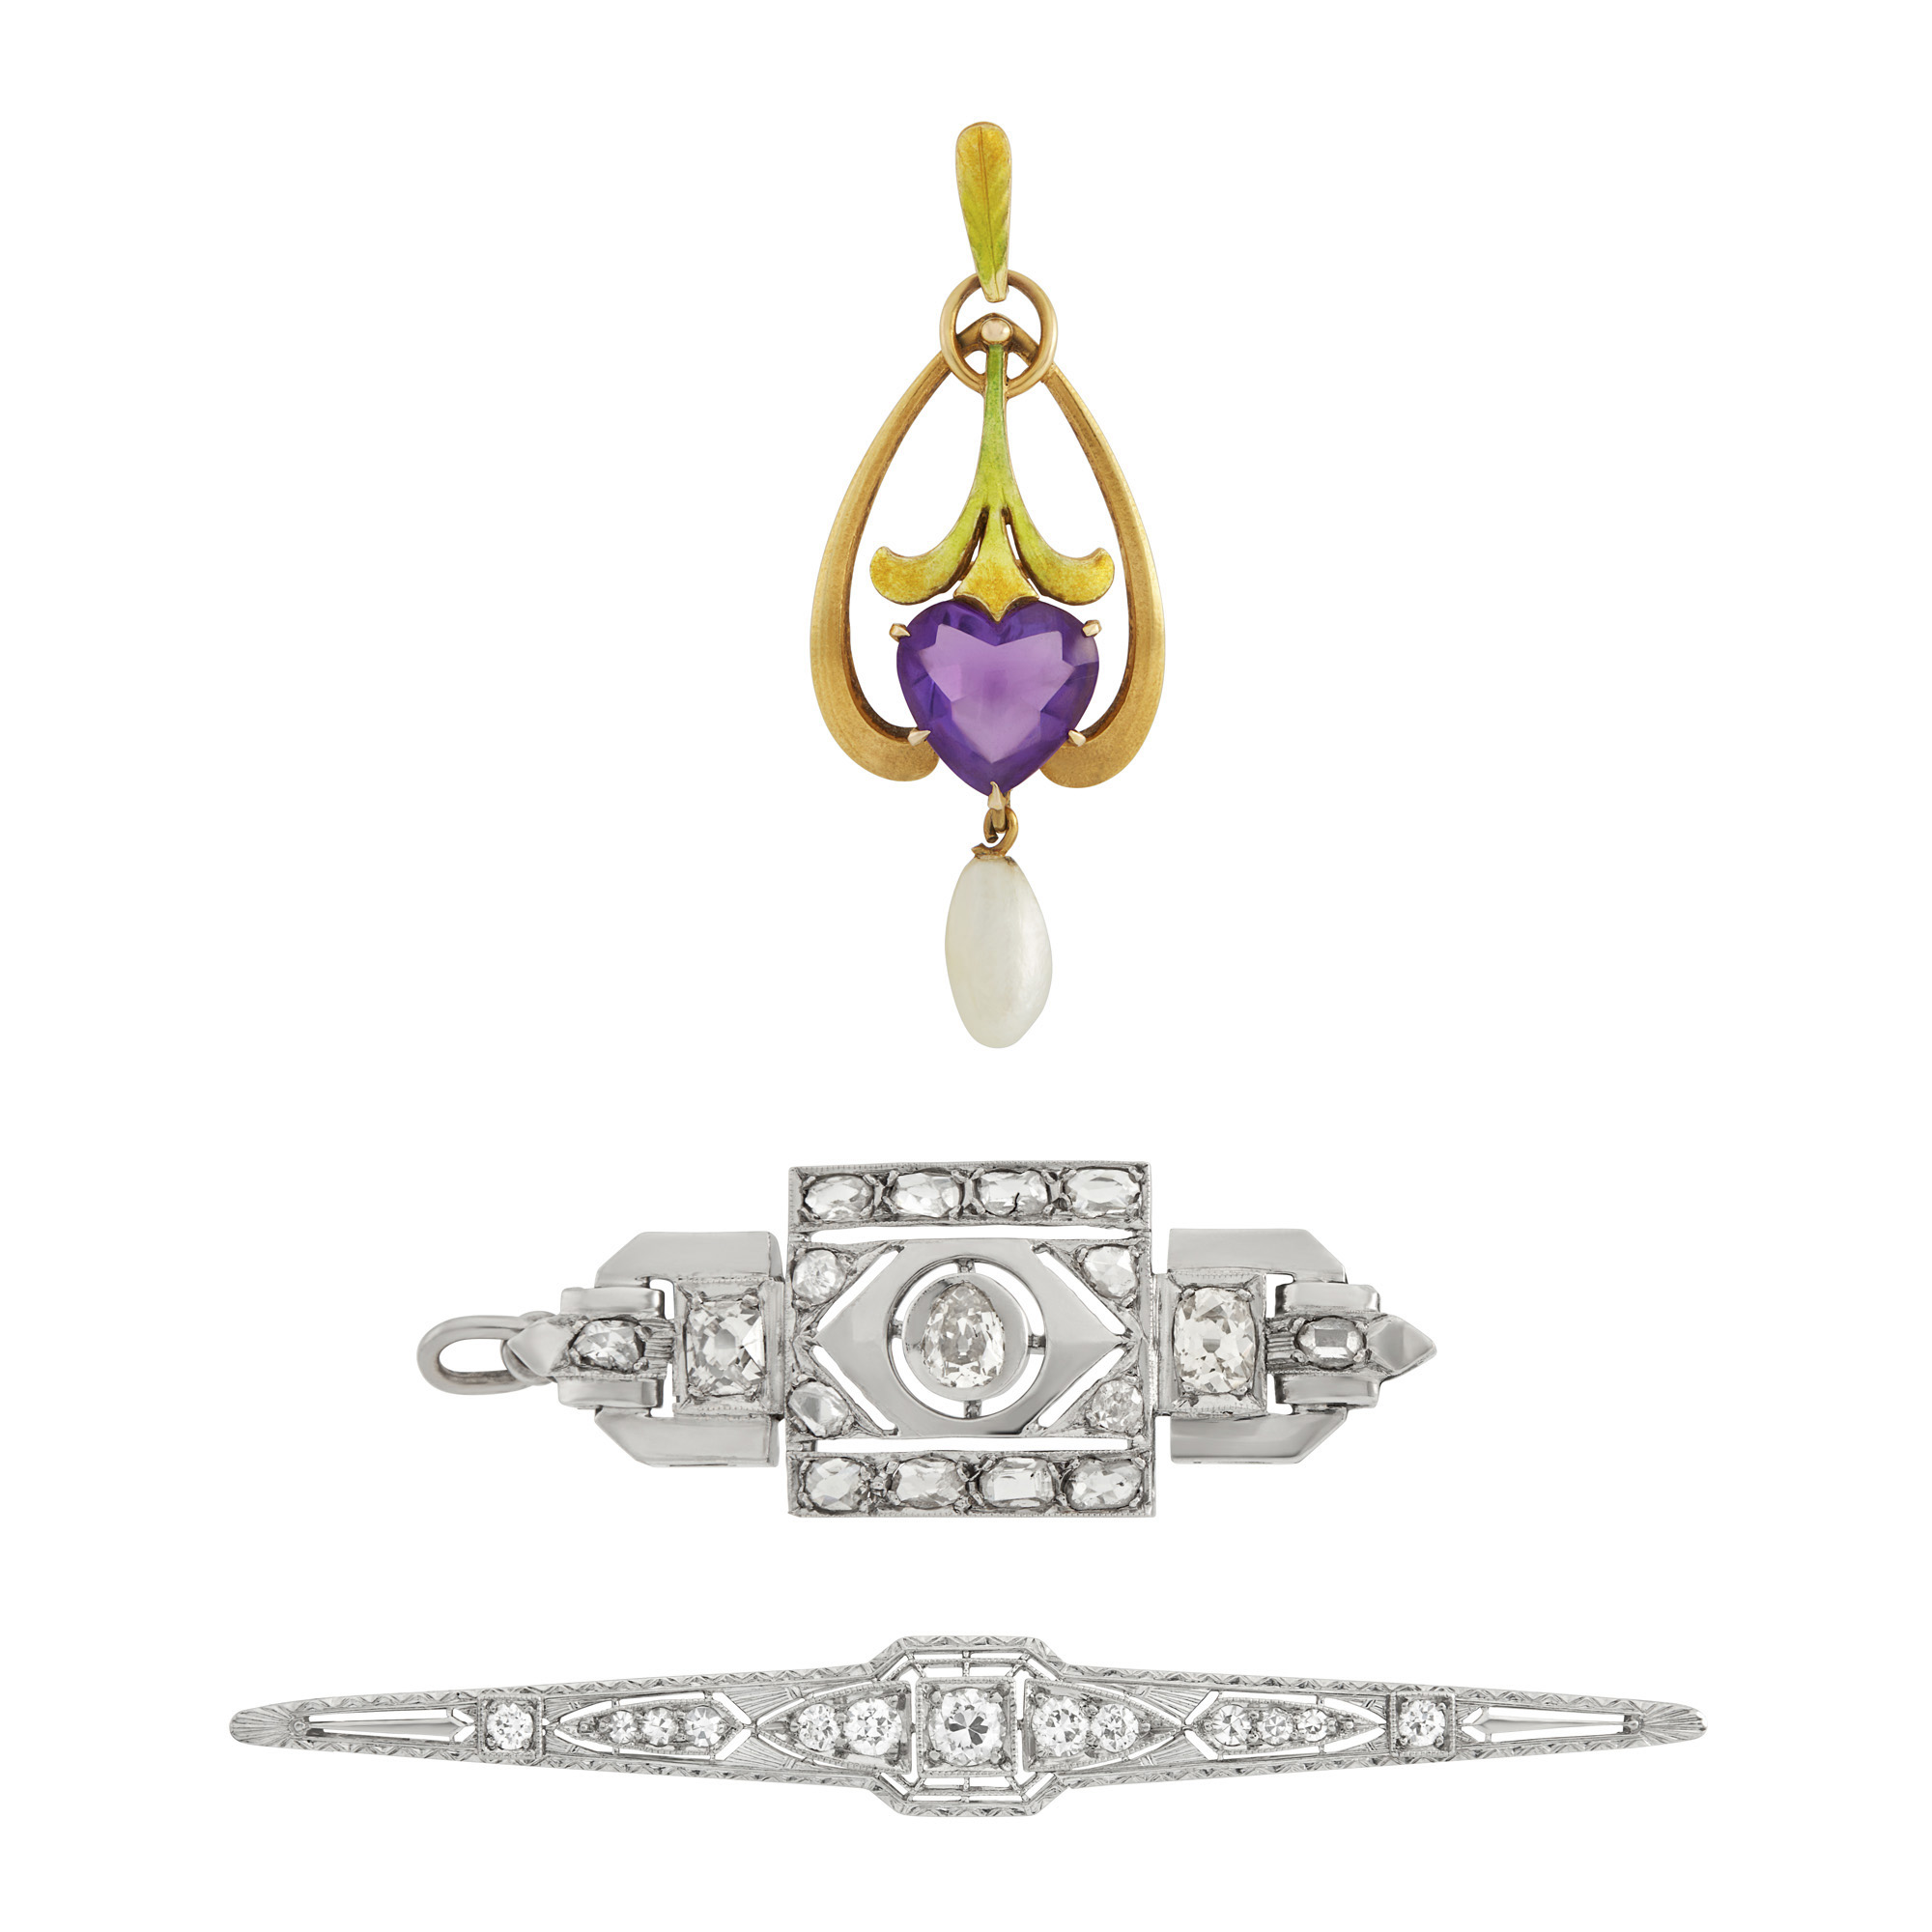 Lot image - Two White Gold, Platinum and Diamond Pins and Art Nouveau Gold, Amethyst, Pearl and Enamel Pendant